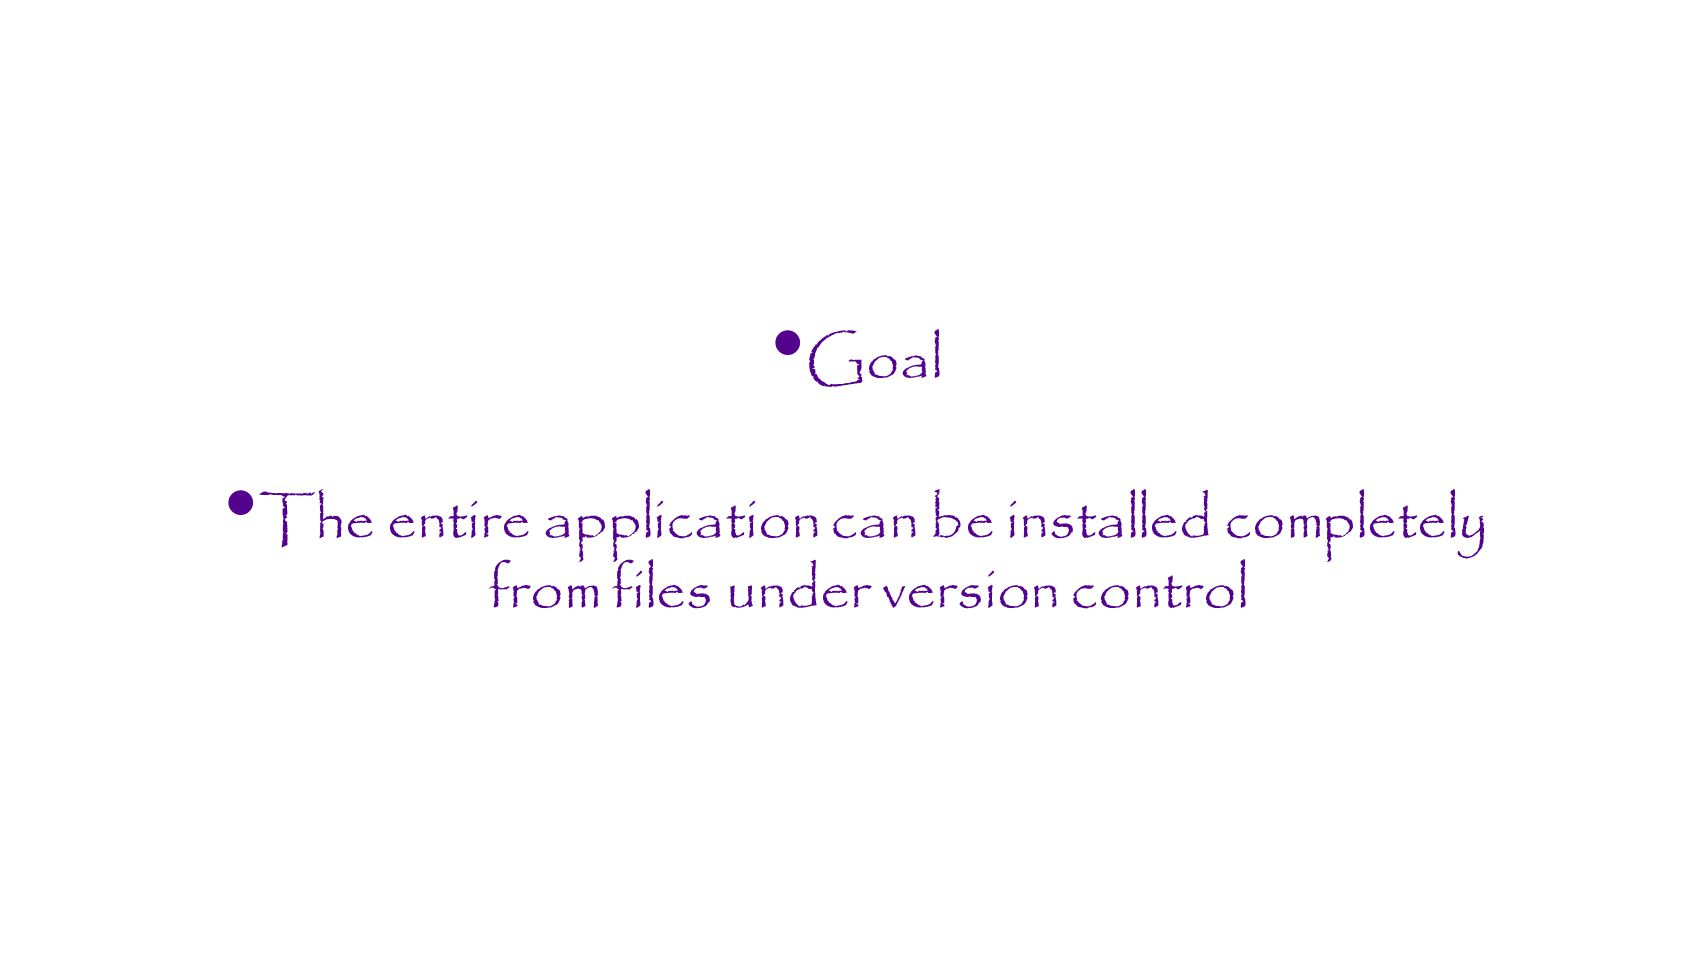 Goal The entire application can be installed completely from files under version control